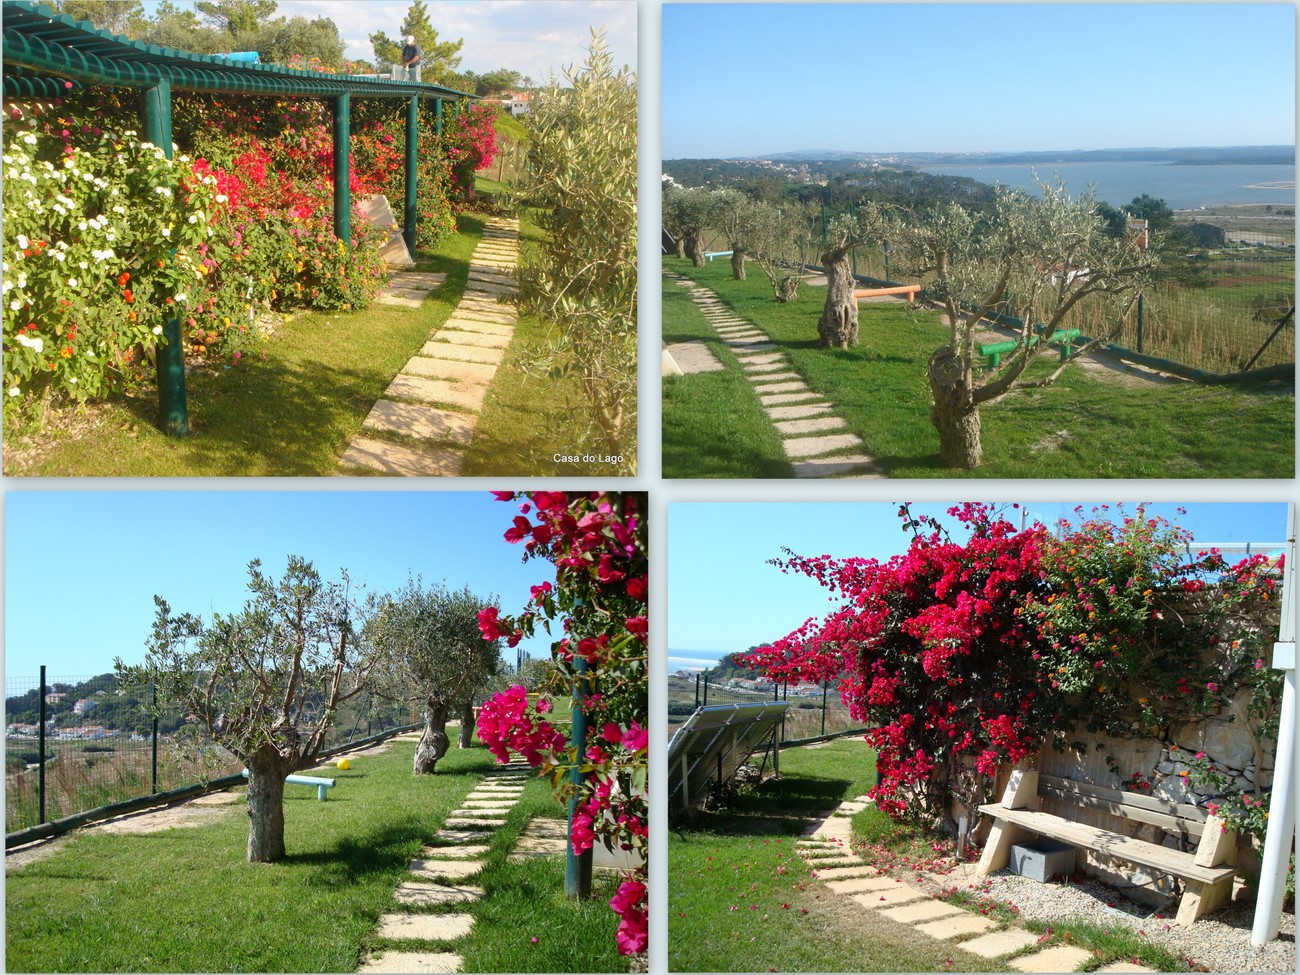 beautiful garden, located at the properties' lower level